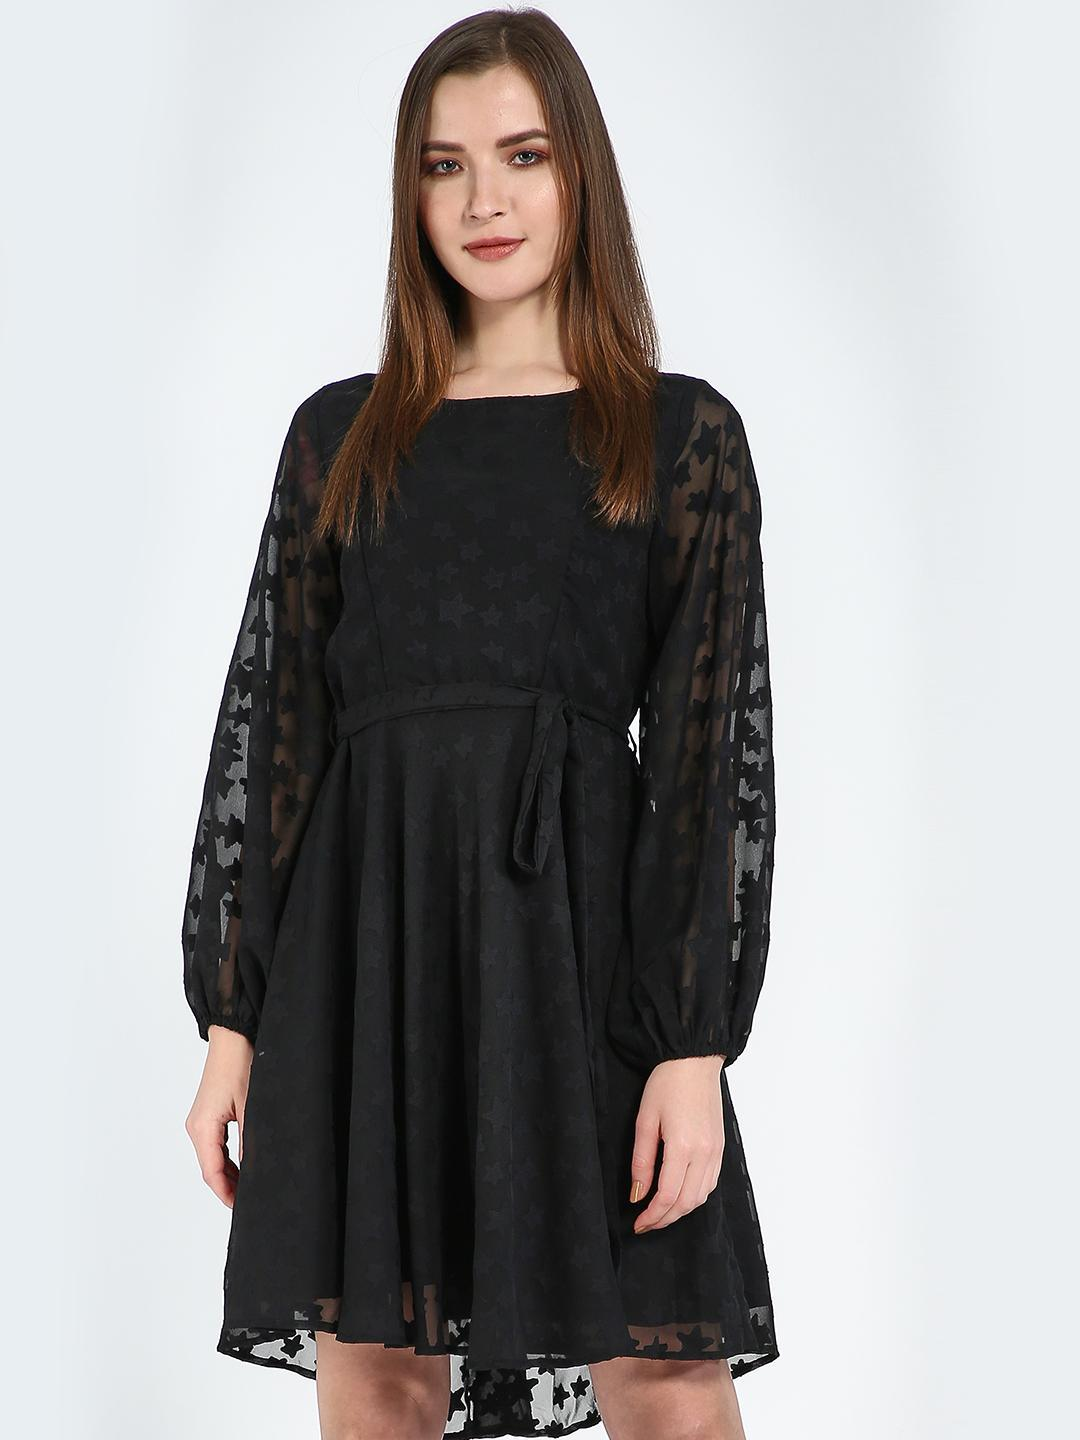 Femella Black Black Textured Fit And Flare Belted Dress 1